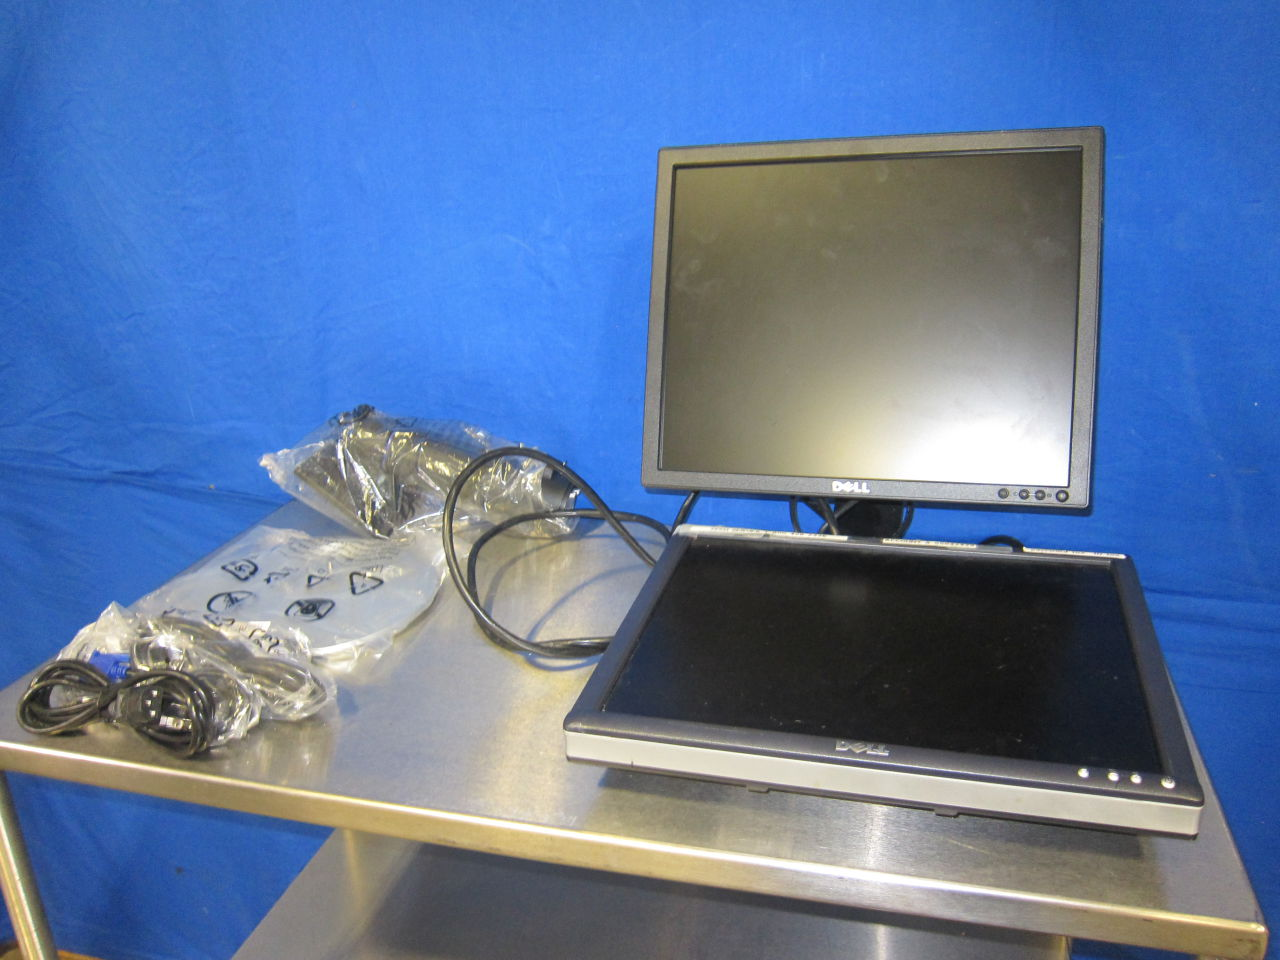 DELL E170SC-1704FPT+  - Lot of 2 Display Monitor